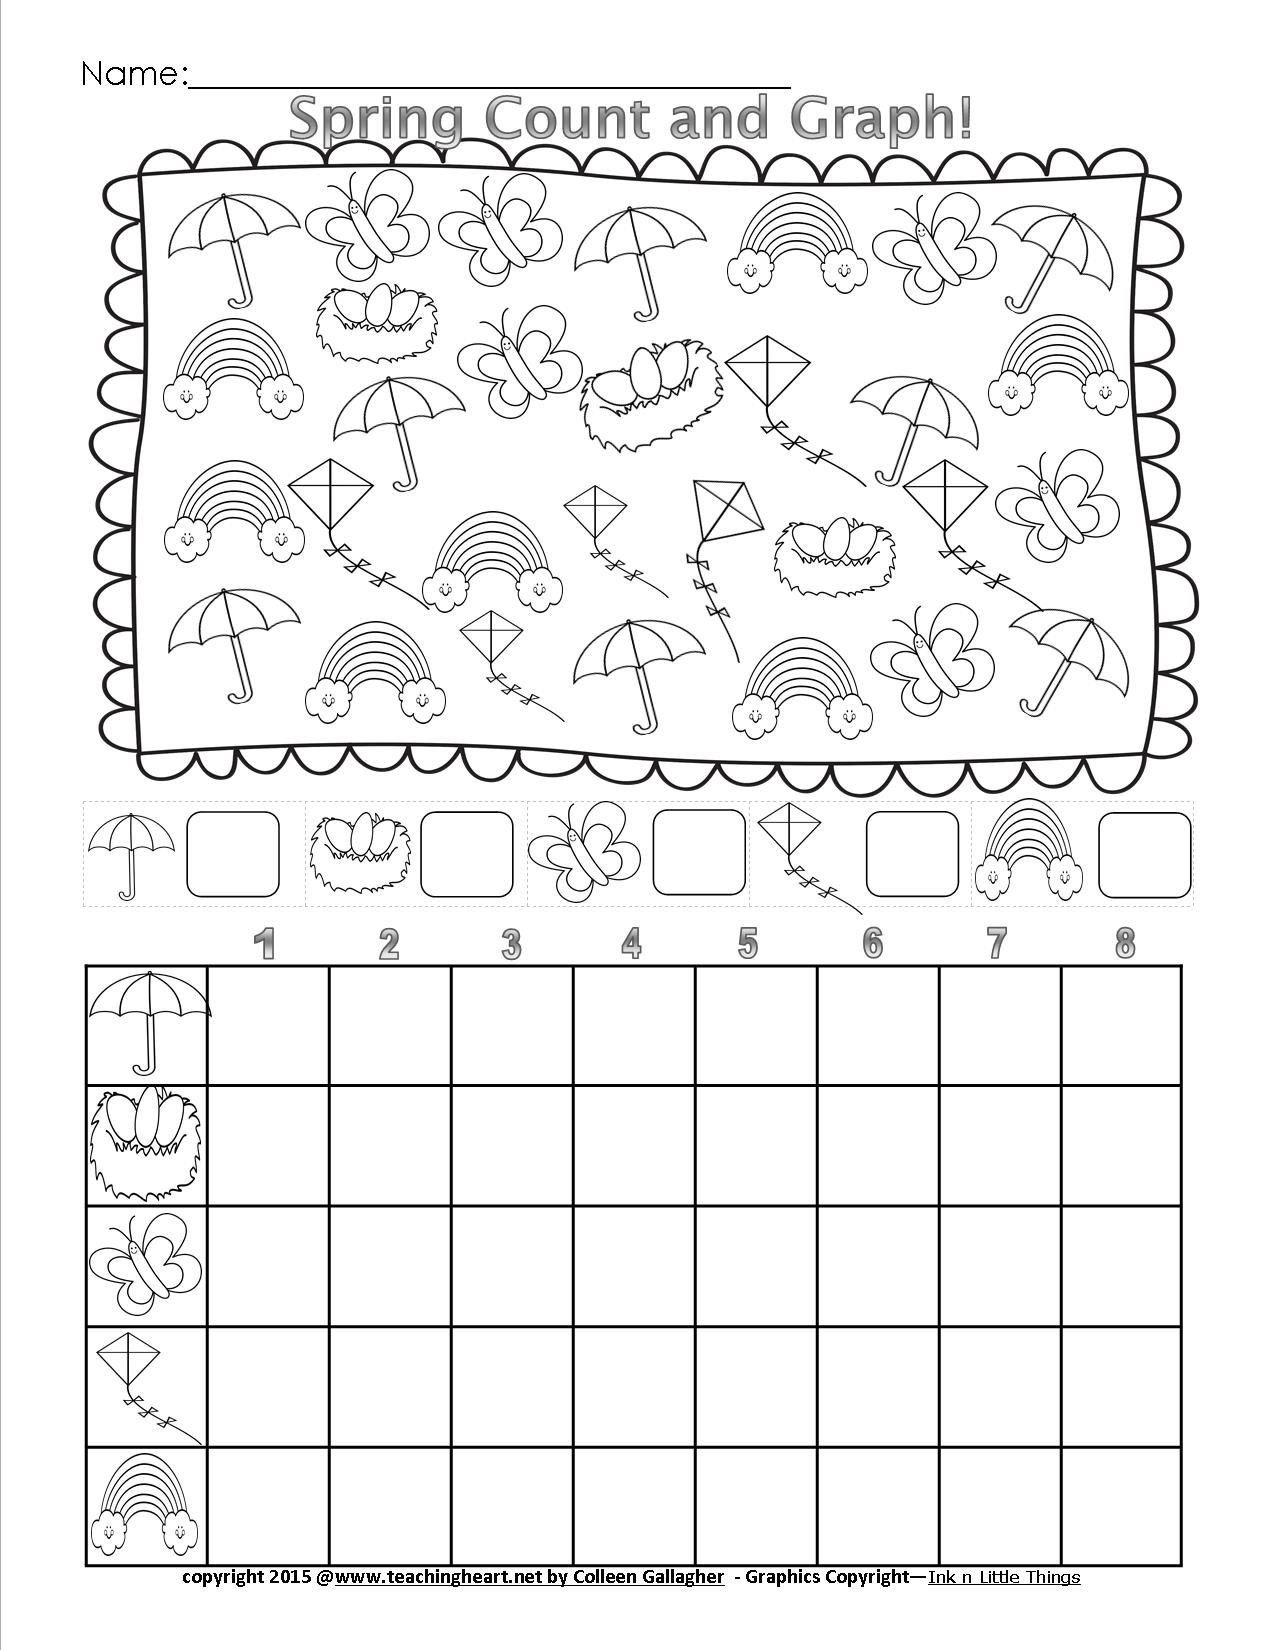 Spring Count and Graph Free Teaching Heart Blog